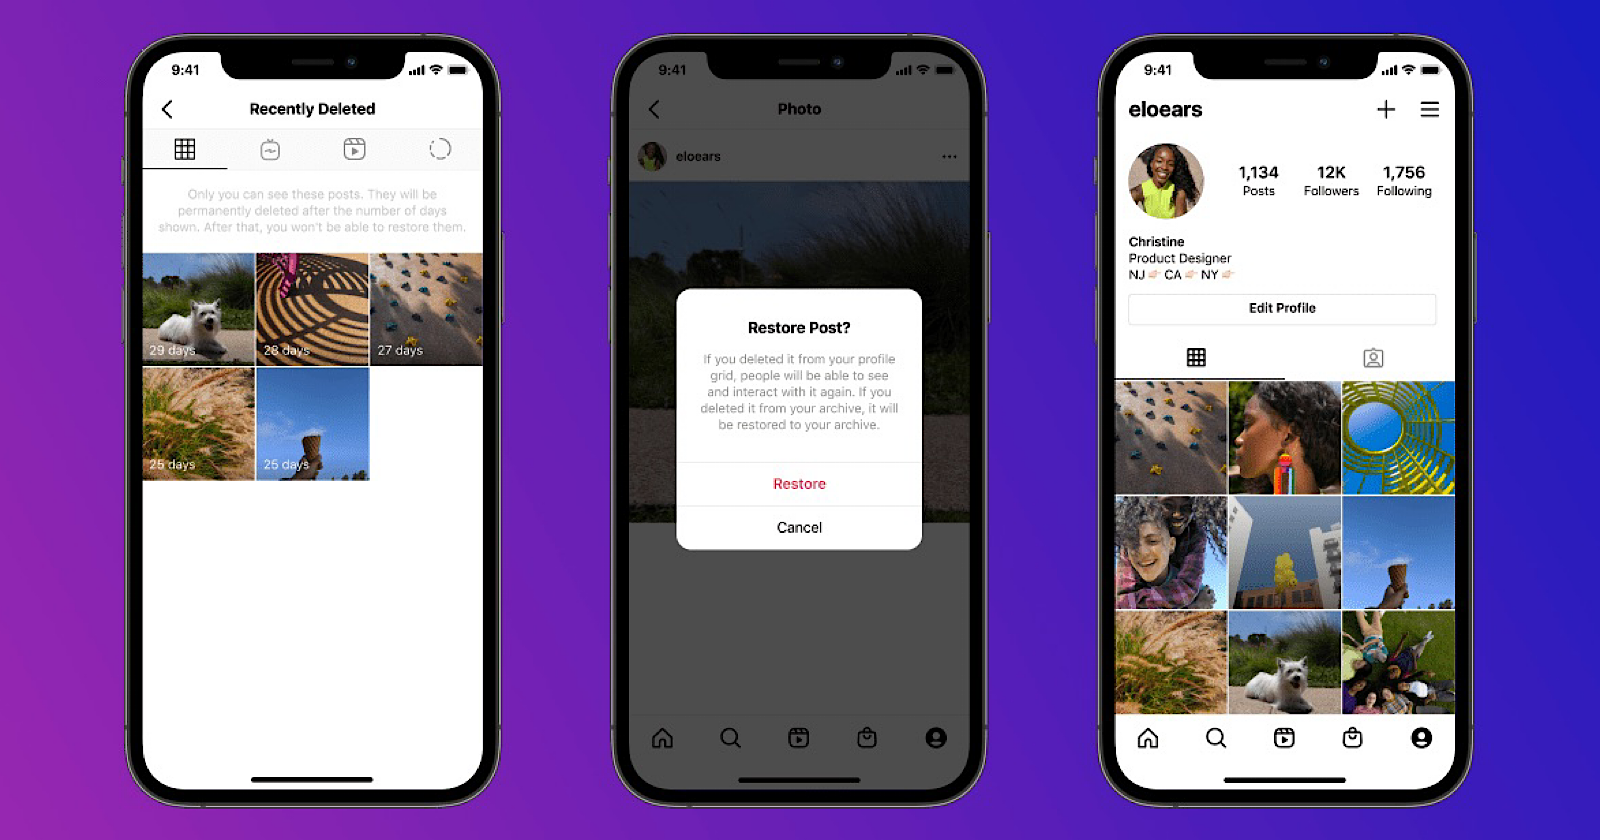 Instagram Adds 'Recently Deleted' Folder For Removed Content via @MattGSouthern